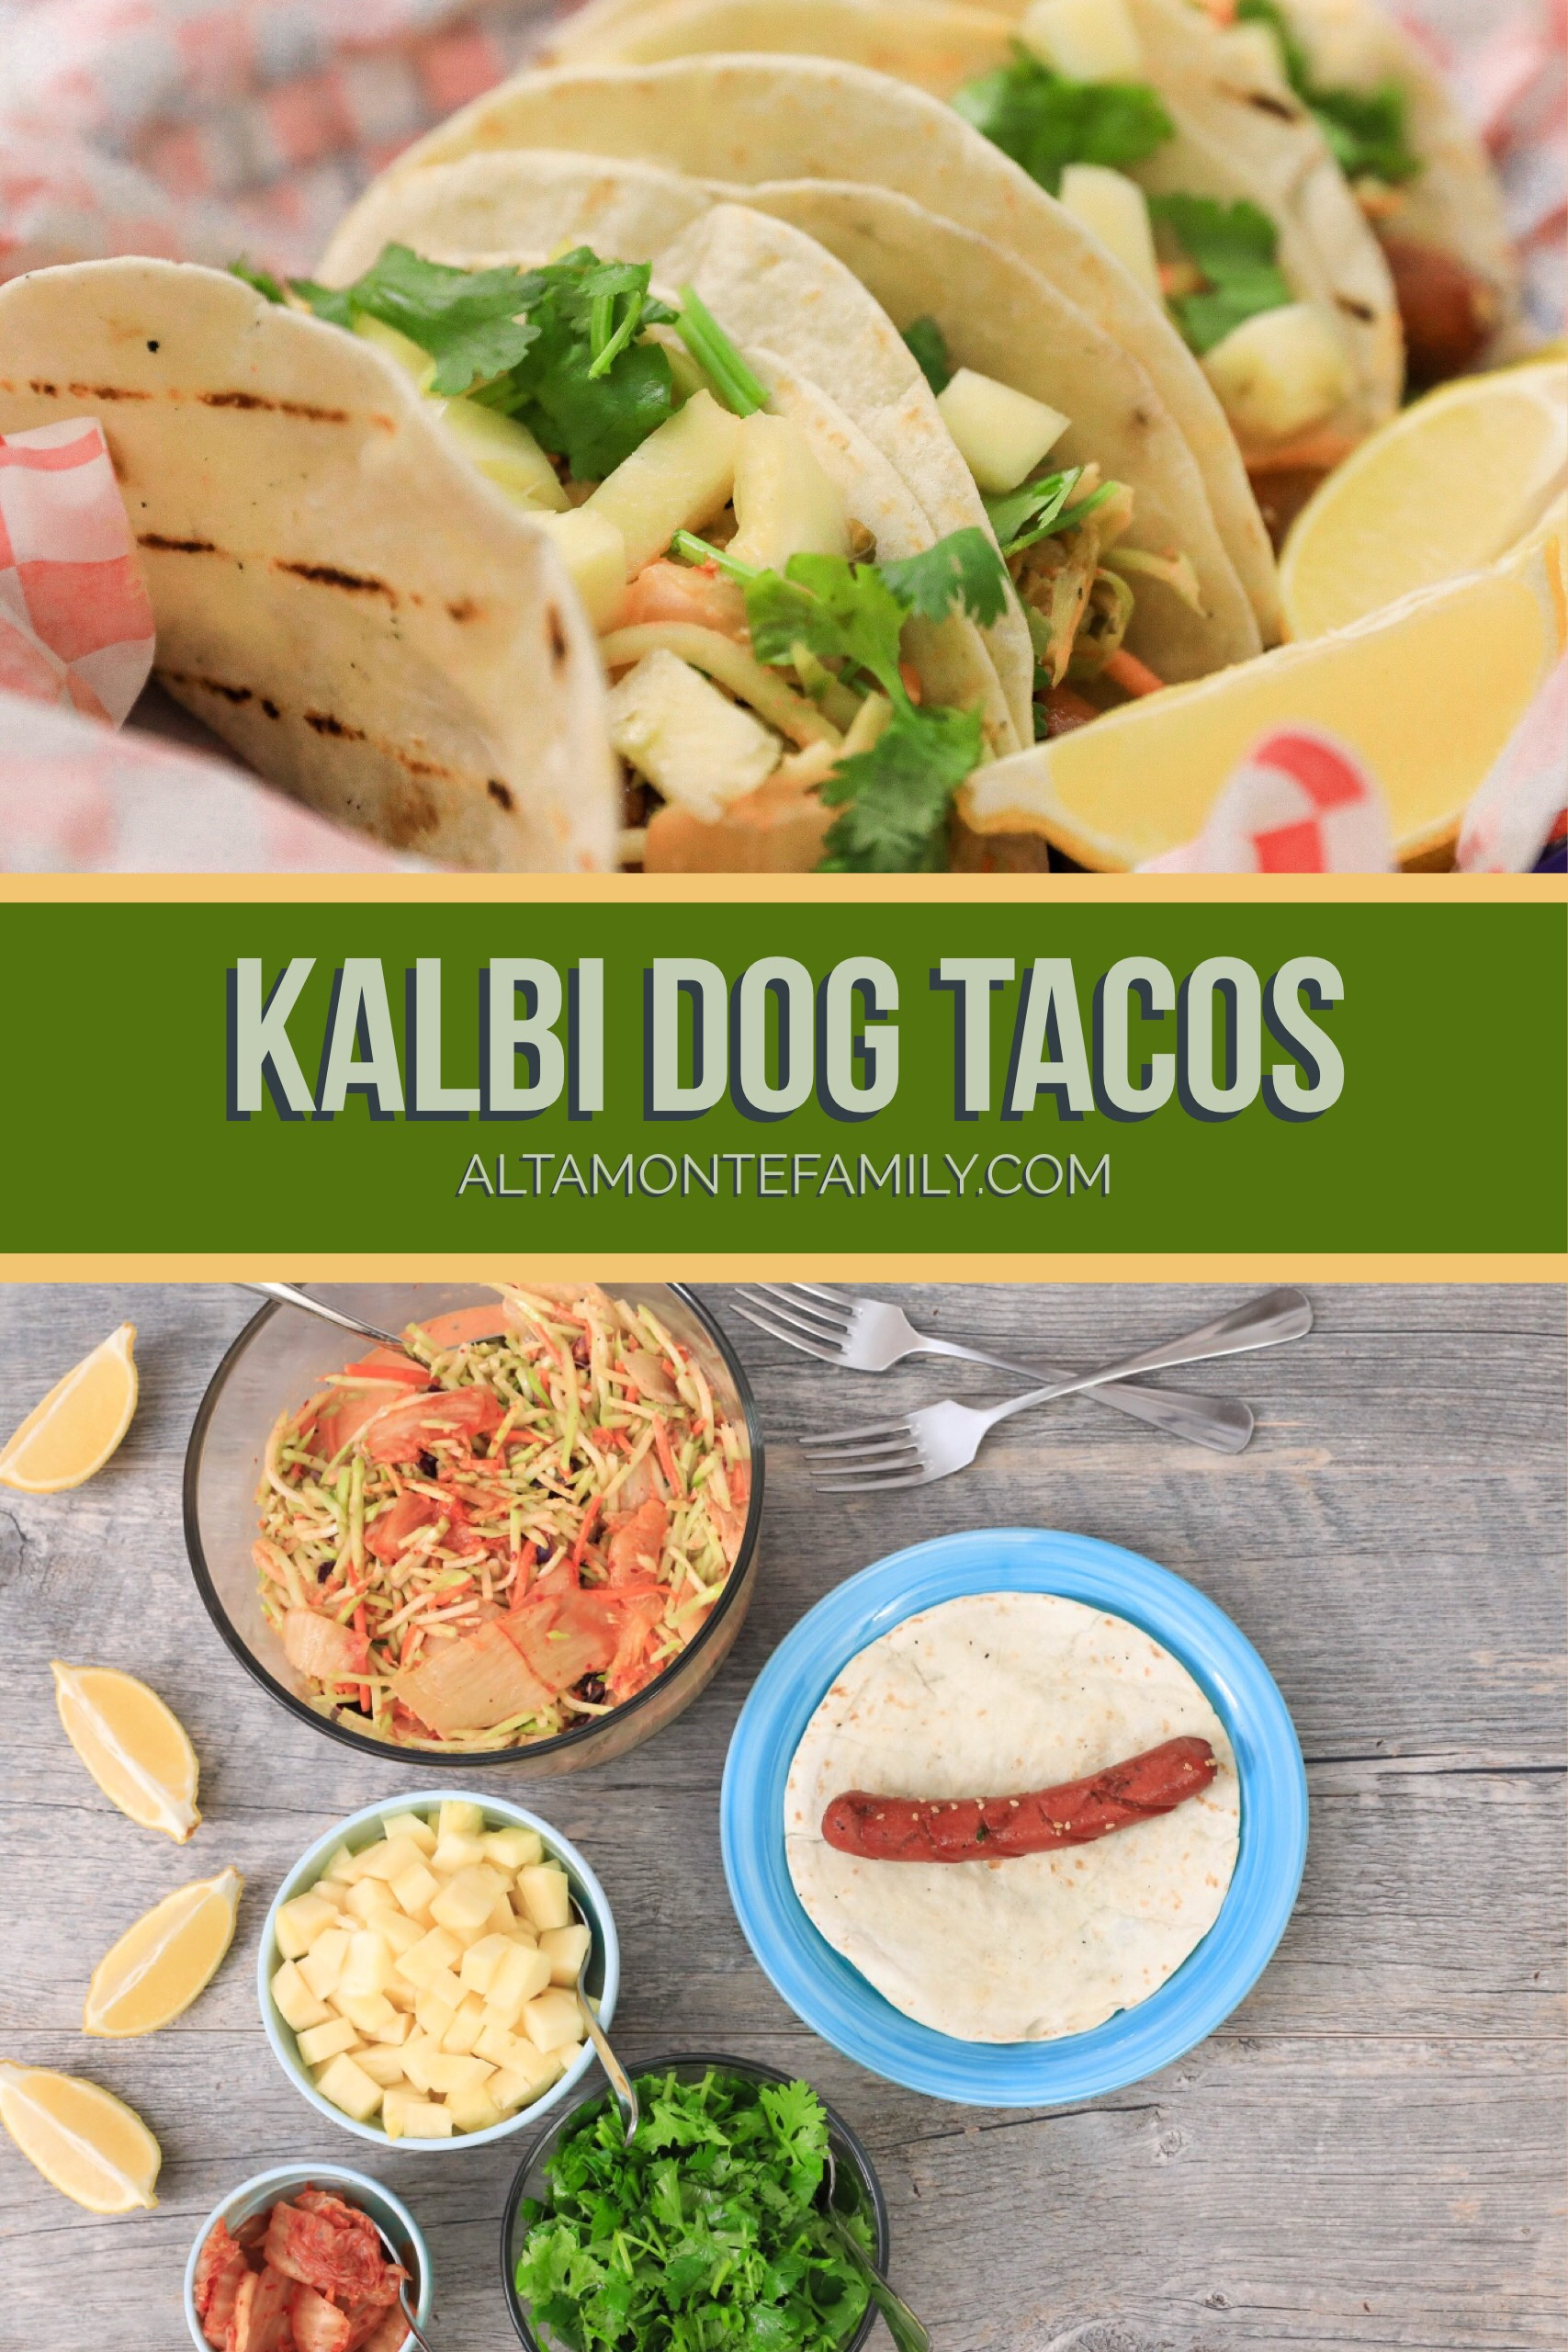 Kalbi Dog Tacos Hotdog Recipe - Korean BBQ Summer Grilling Ideas